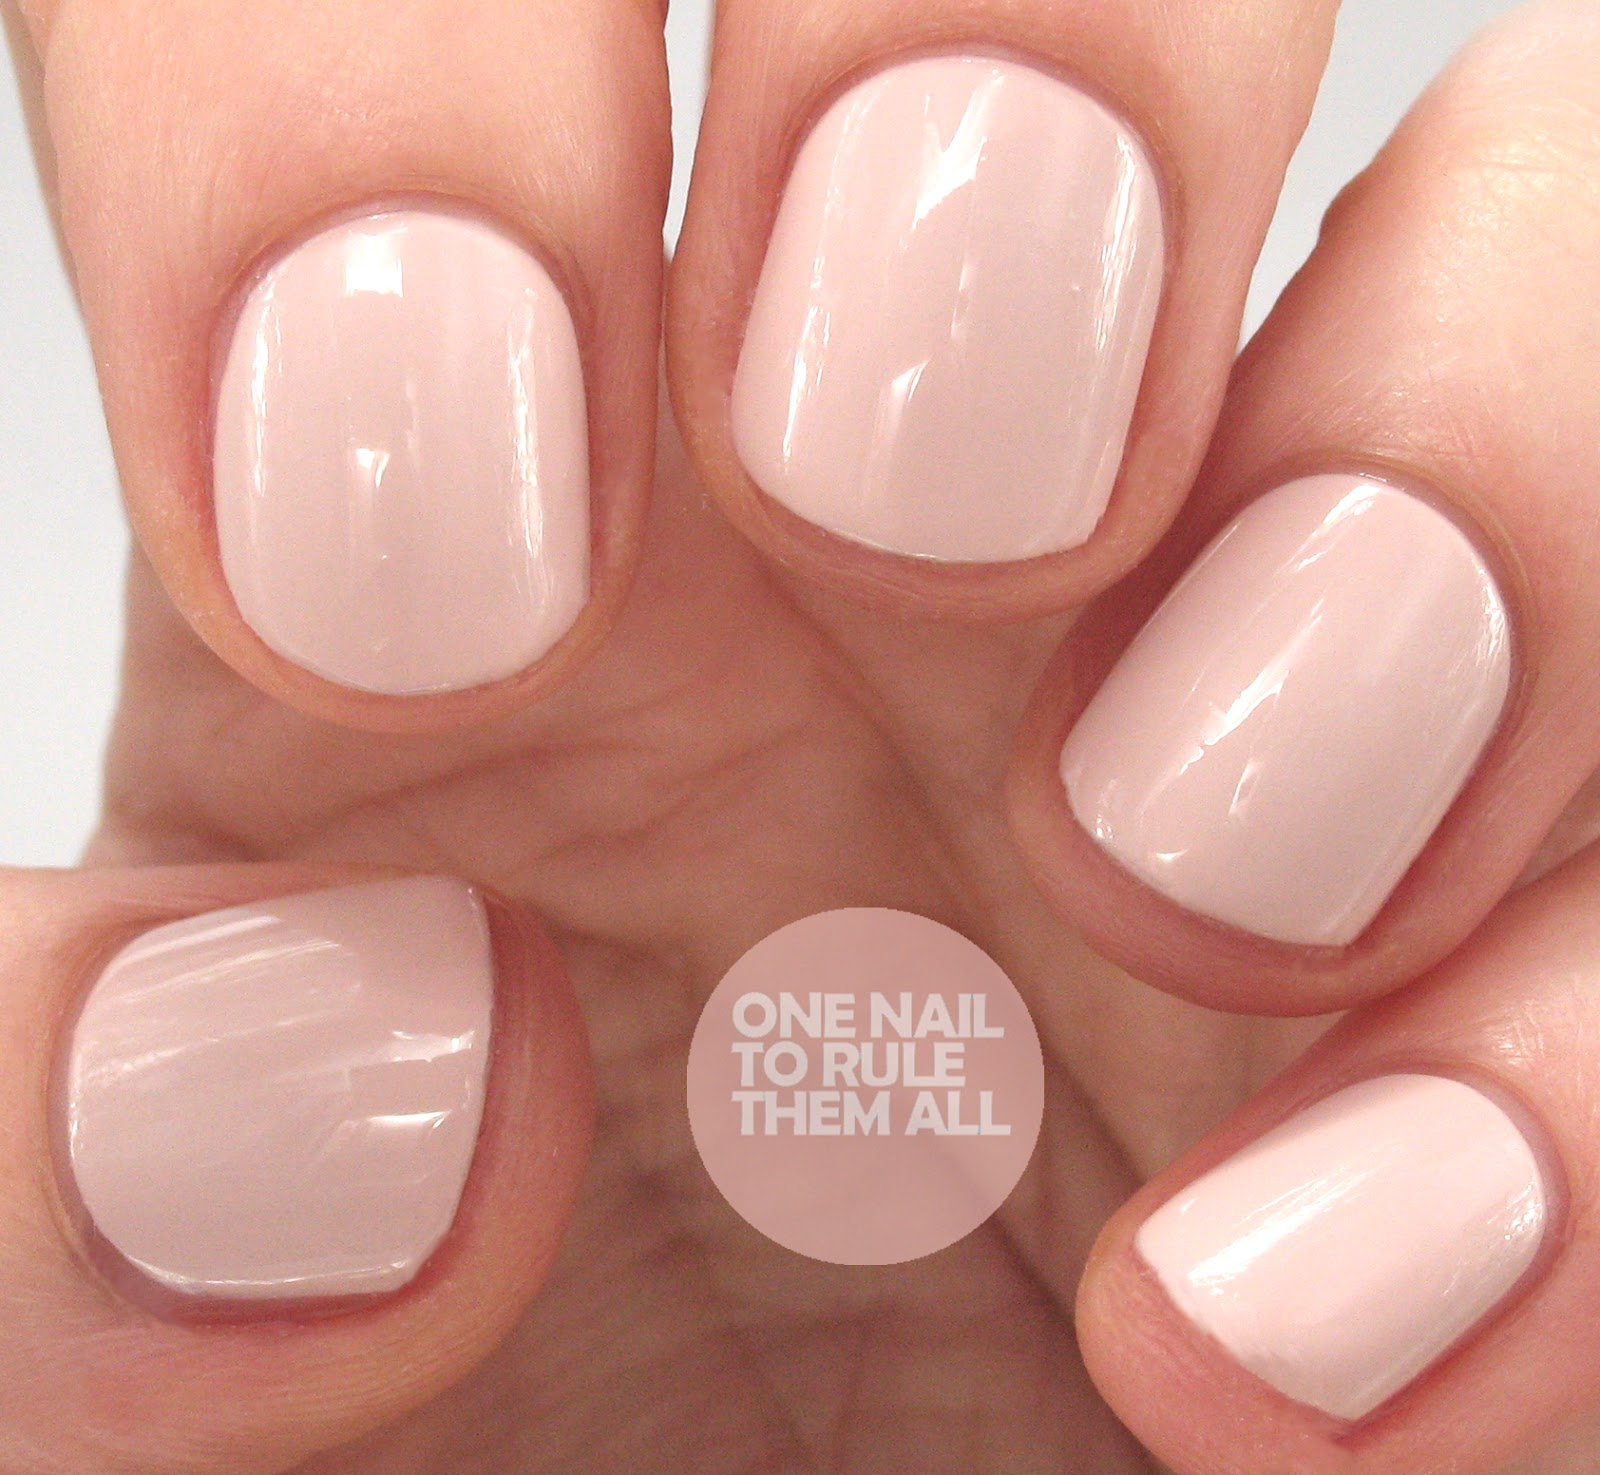 One Nail To Rule Them All Barry M Nail Art Pens Review: One Nail To Rule Them All: Barry M Spring/Summer 2016